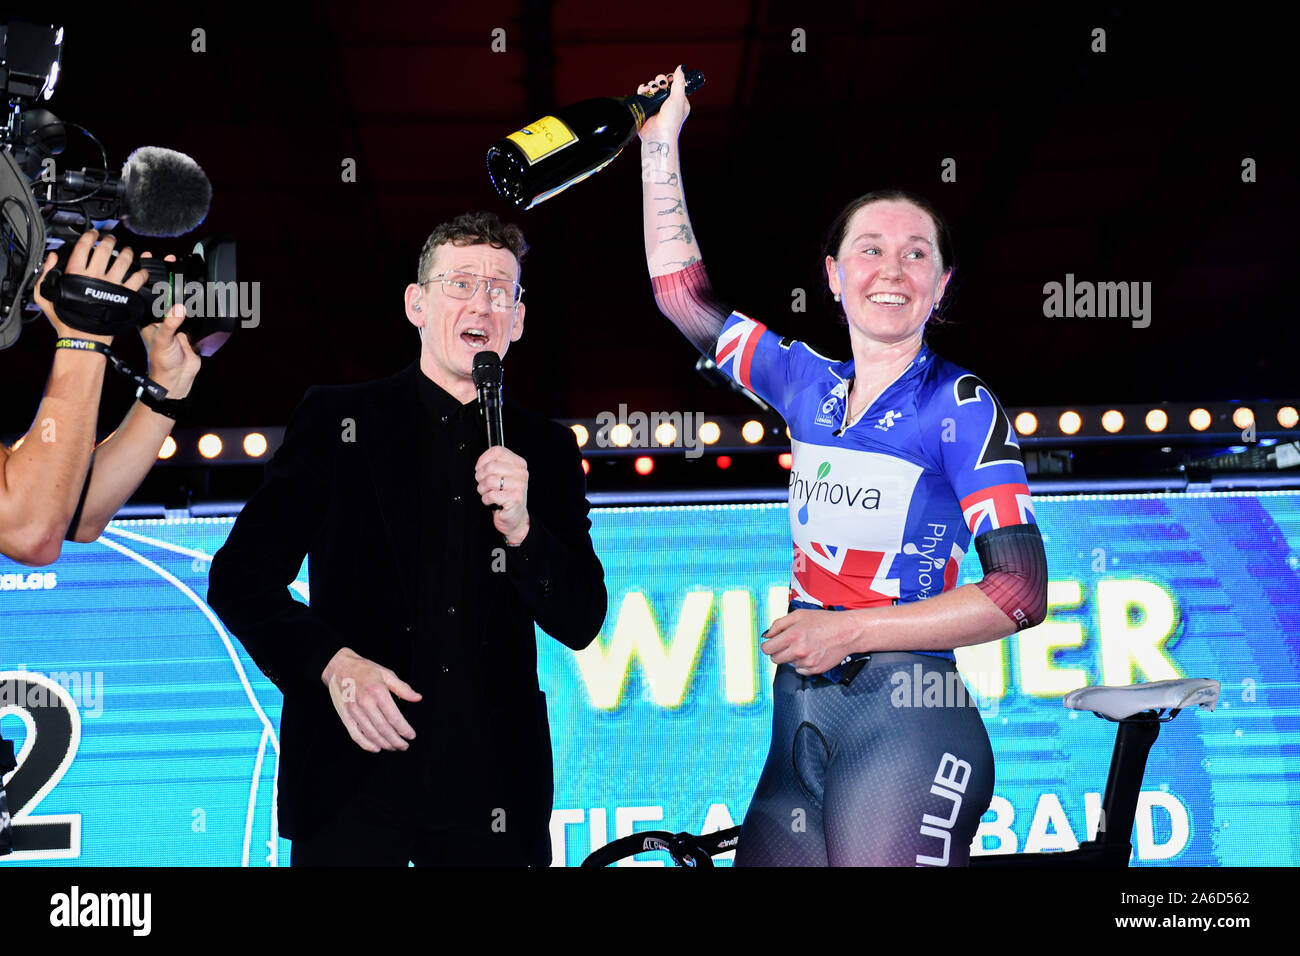 LONDON, UNITED KINGDOM. 25th Oct, 2019. Katie Archibald Great Britain) celebrates after wining the Women 20K points race during Day 4 of Six Day London 2019 at Lee Valley VeloPark on Friday, October 25, 2019 in LONDON, UNITED KINGDOM. Credit: Taka G Wu/Alamy Live News Stock Photo